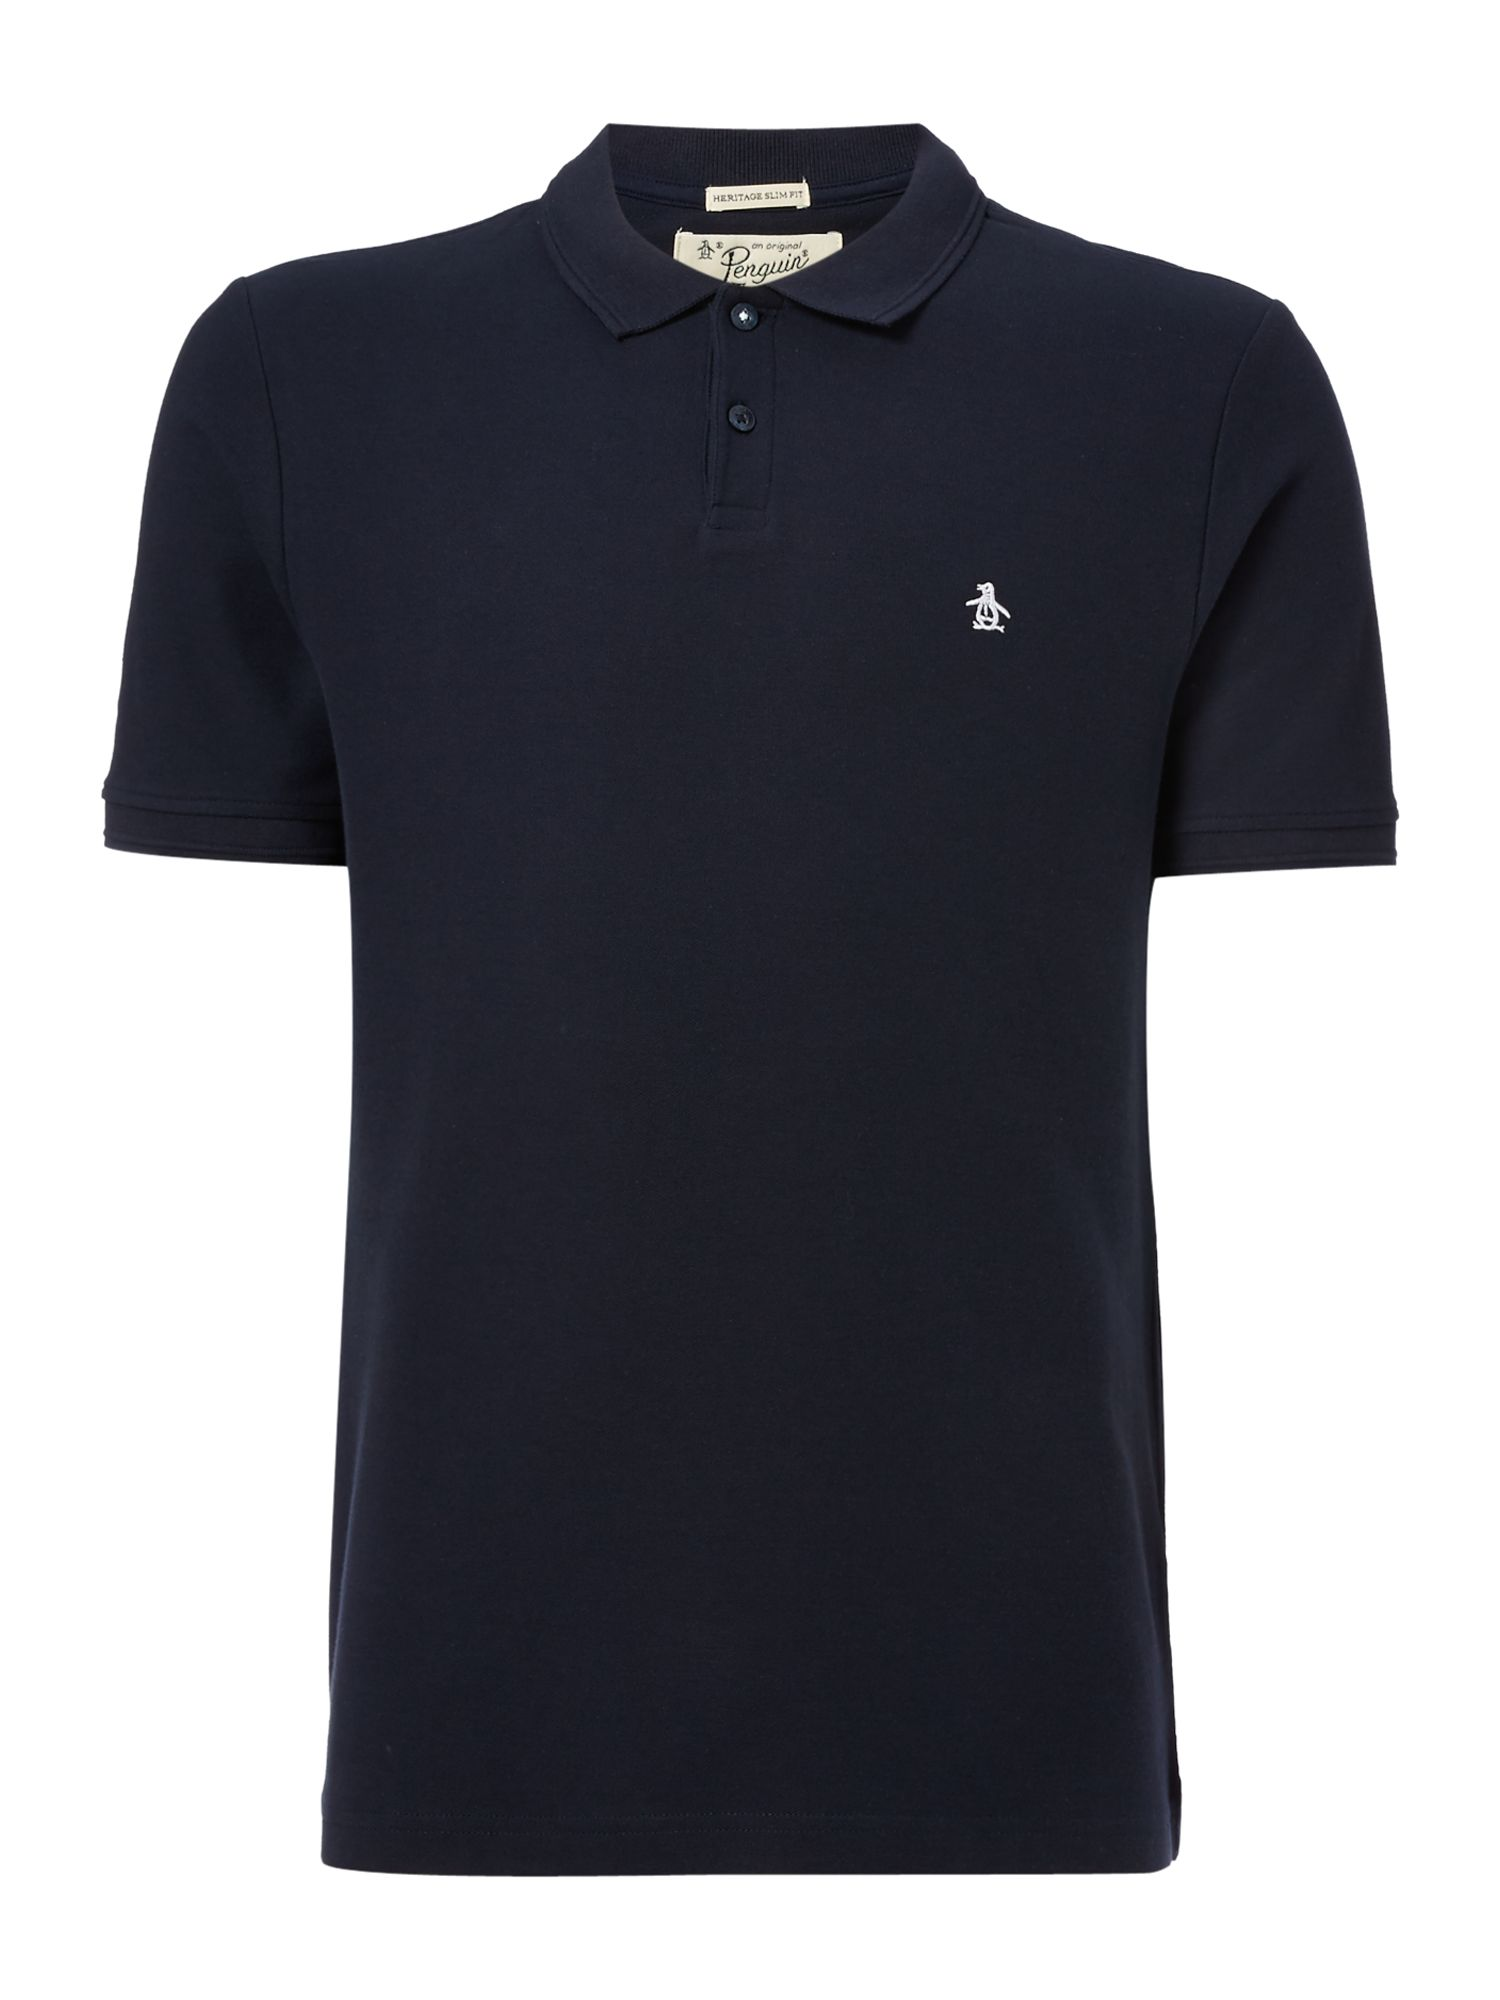 Men's Original Penguin Cotton Raised-Rib short sleeve polo, Blue